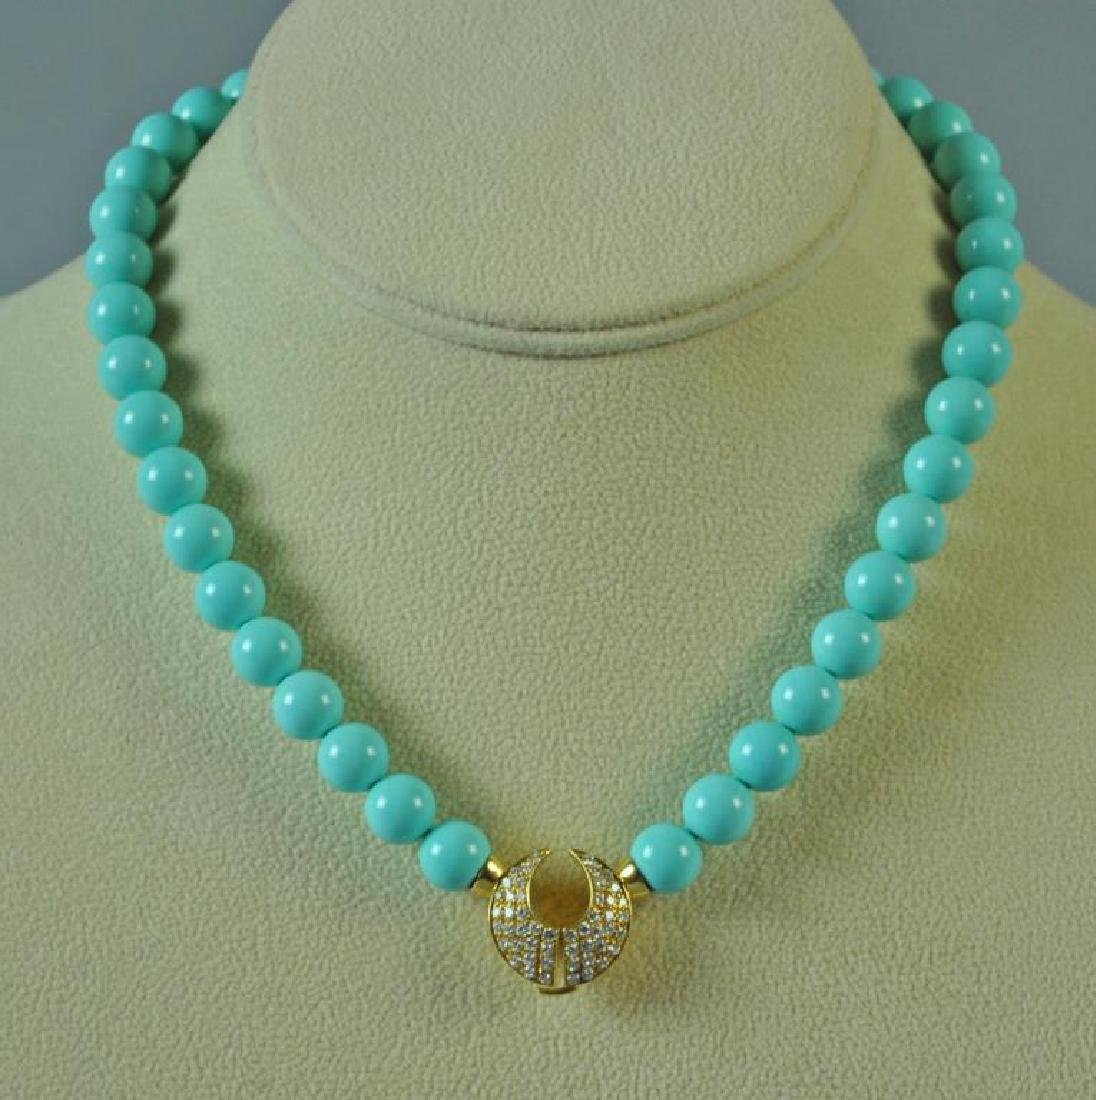 TURQUOISE COLOR BEADS WITH 18K DIAMOND CLASP - 2